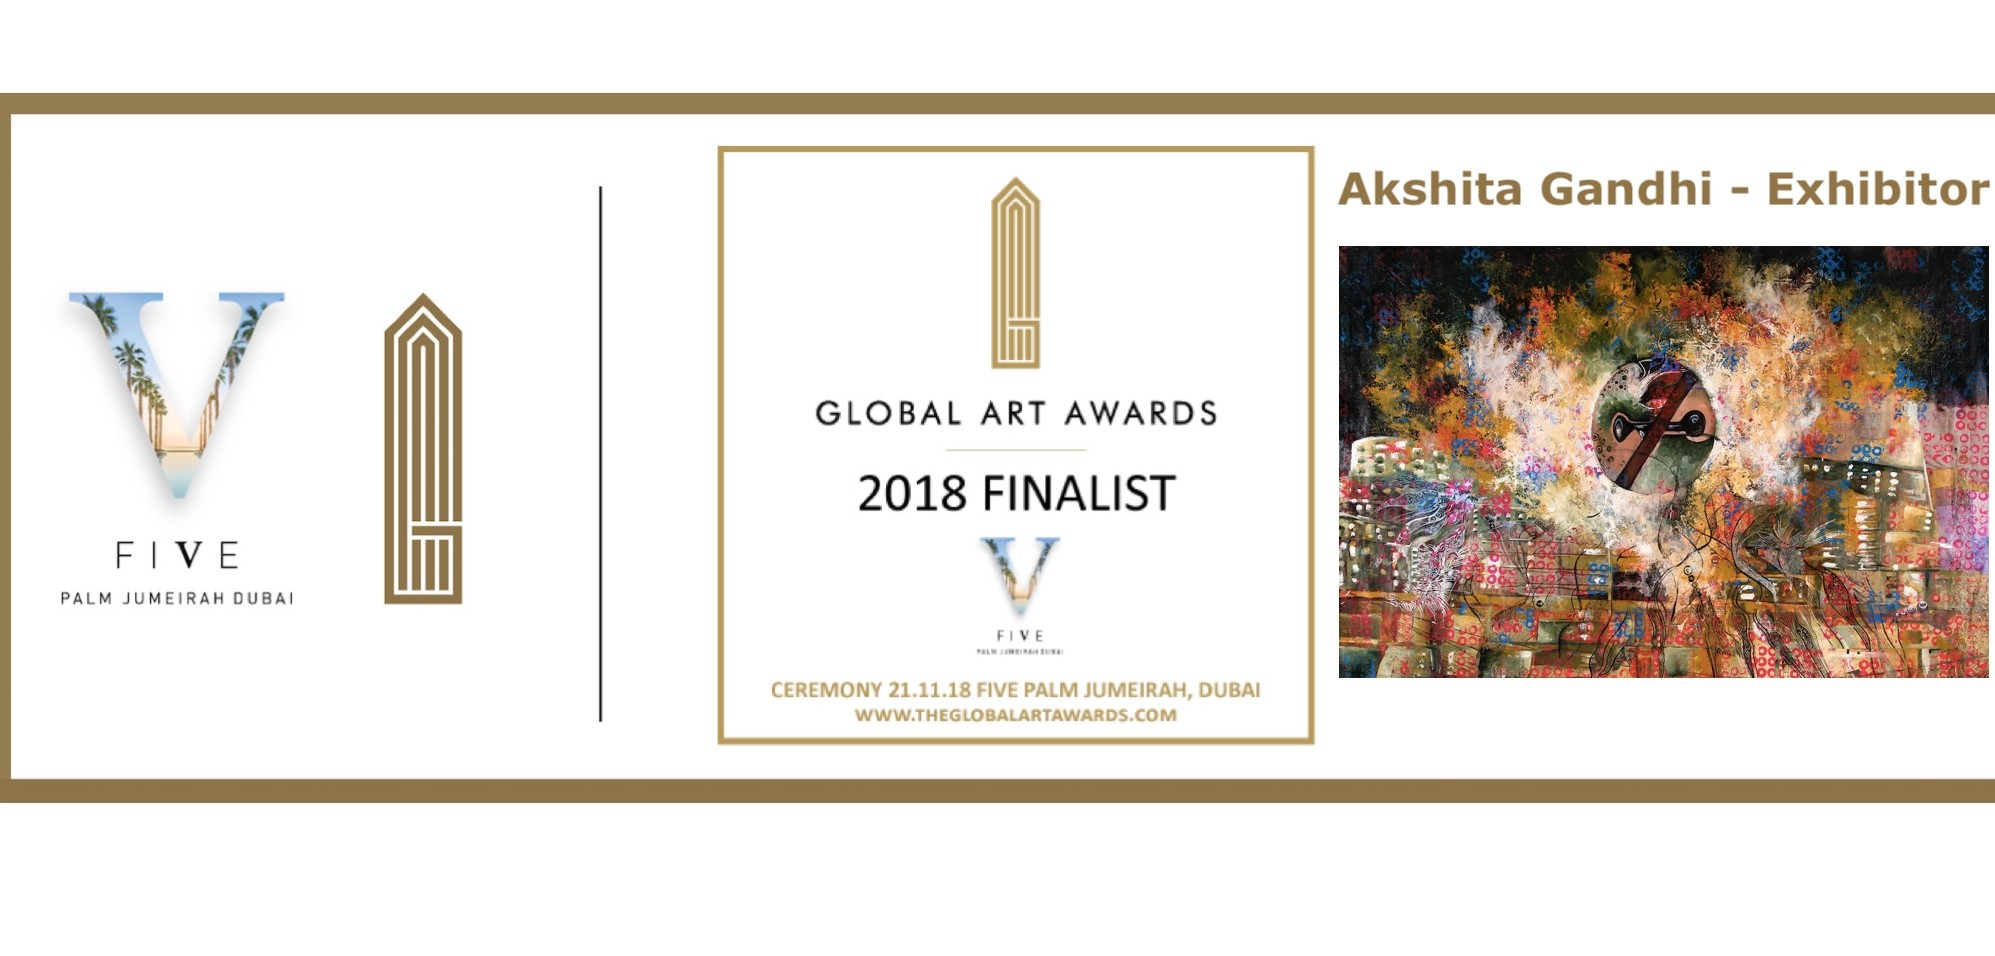 AKSHITA_-GANDHI_PAINFULLY-CONCEALED-SILENCE_GLOBAL ART AWARDS 2018